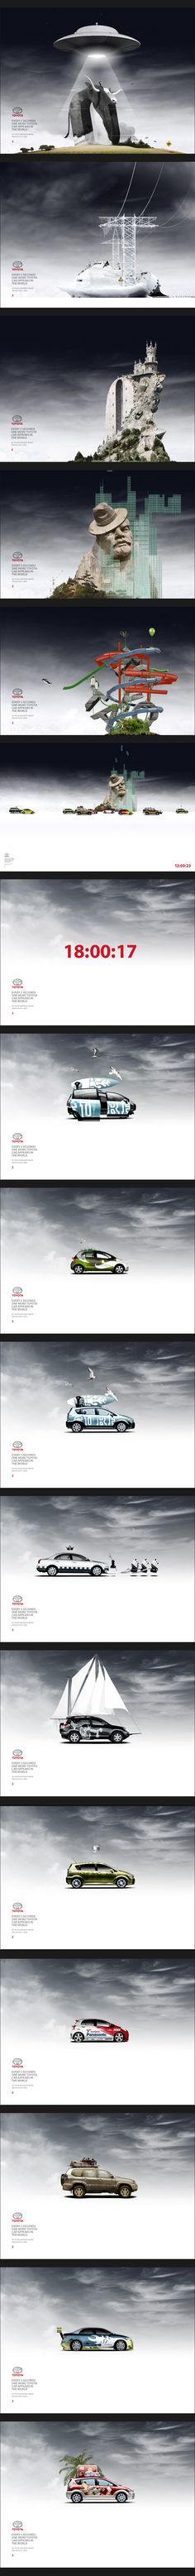 Cool Automotive Web Design on the Internet. Toyota. #automotive #webdesign @ http://www.pinterest.com/alfredchong/automotive-web-design/